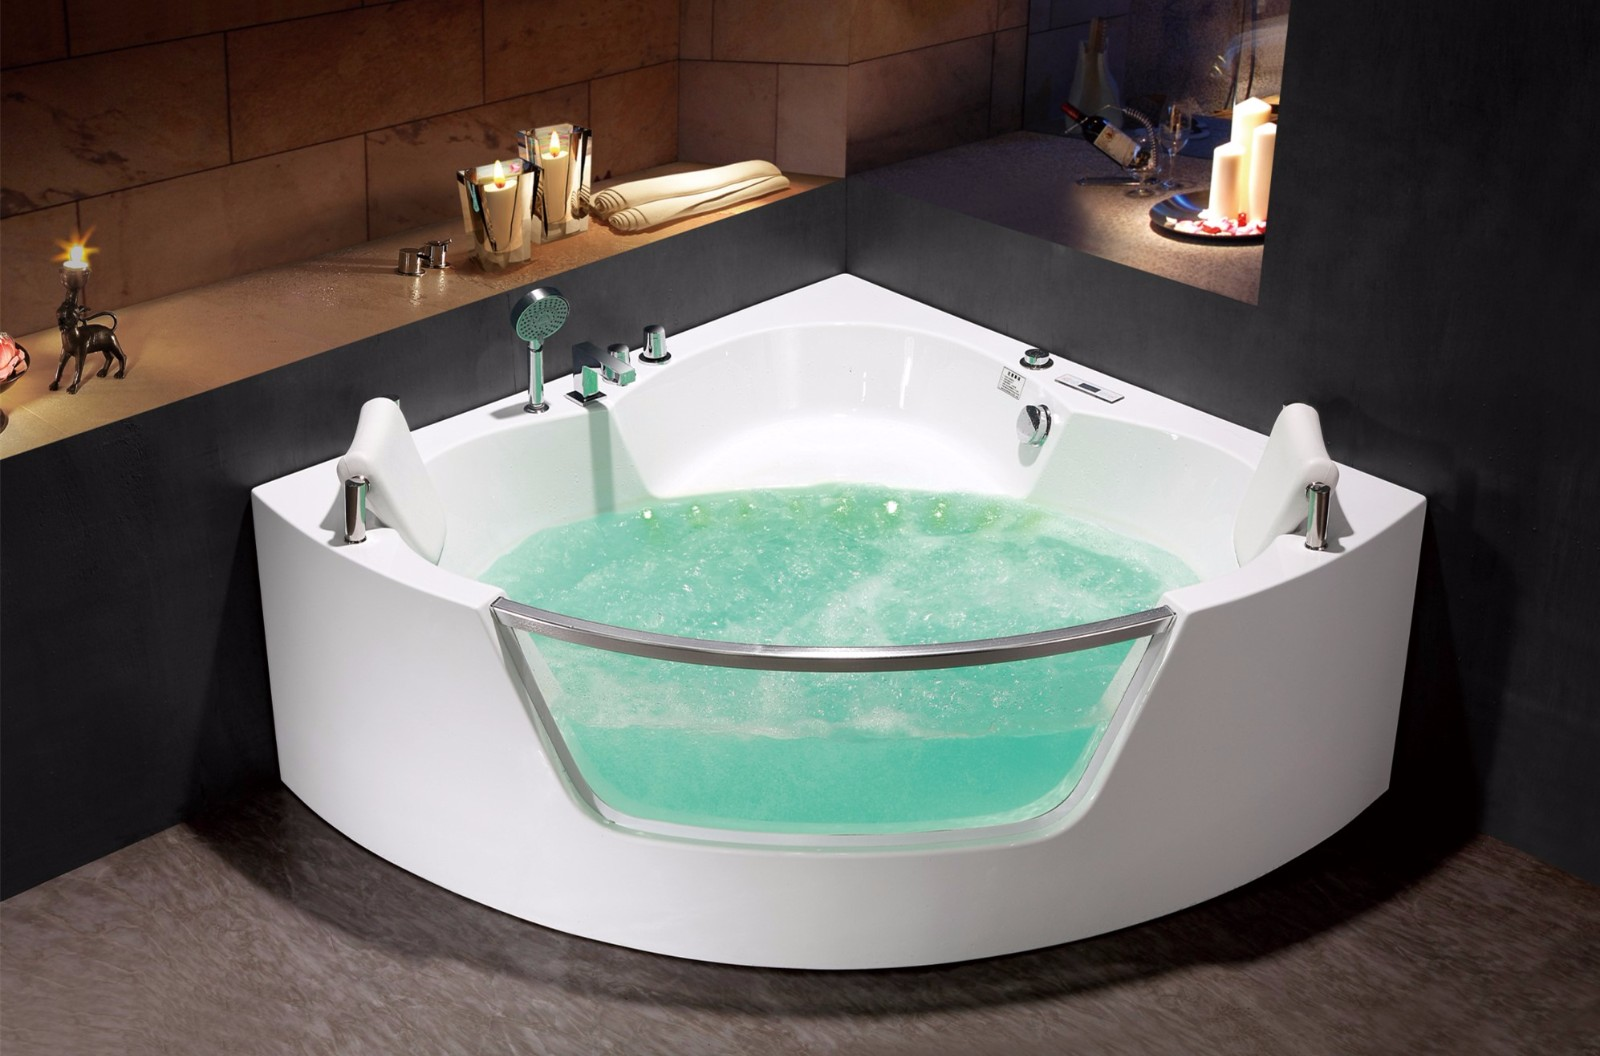 C-448 C-449 Massage Jetted Bathroom Bathtub with Cheap Price_副本.jpg